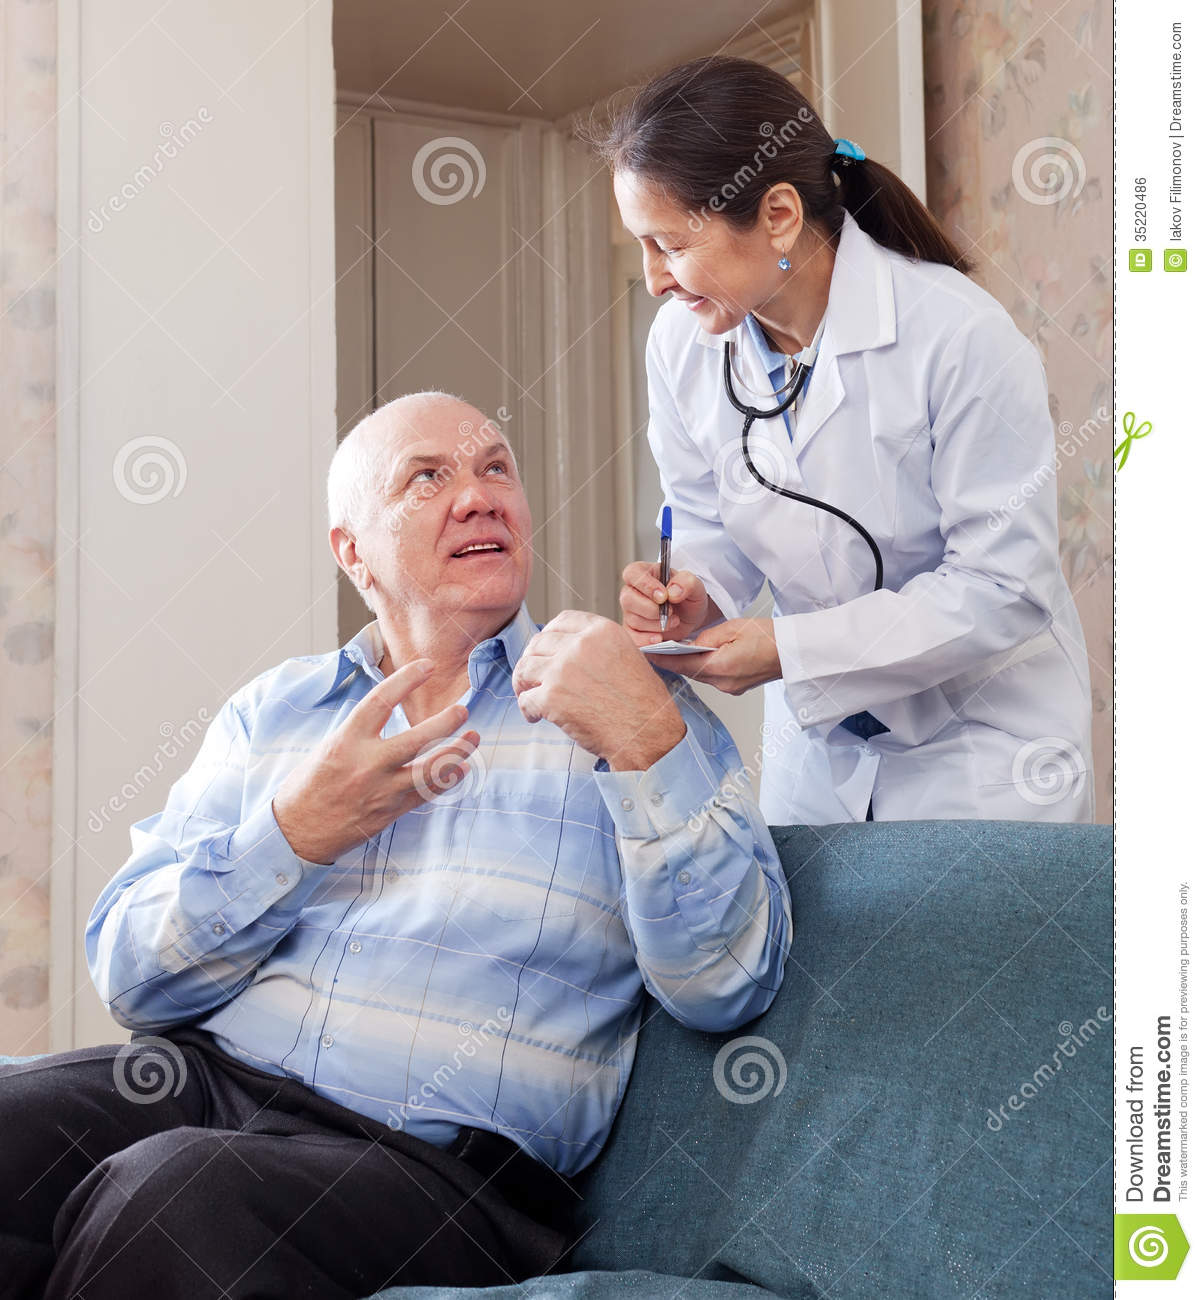 Mature man tells the doctor the symptoms